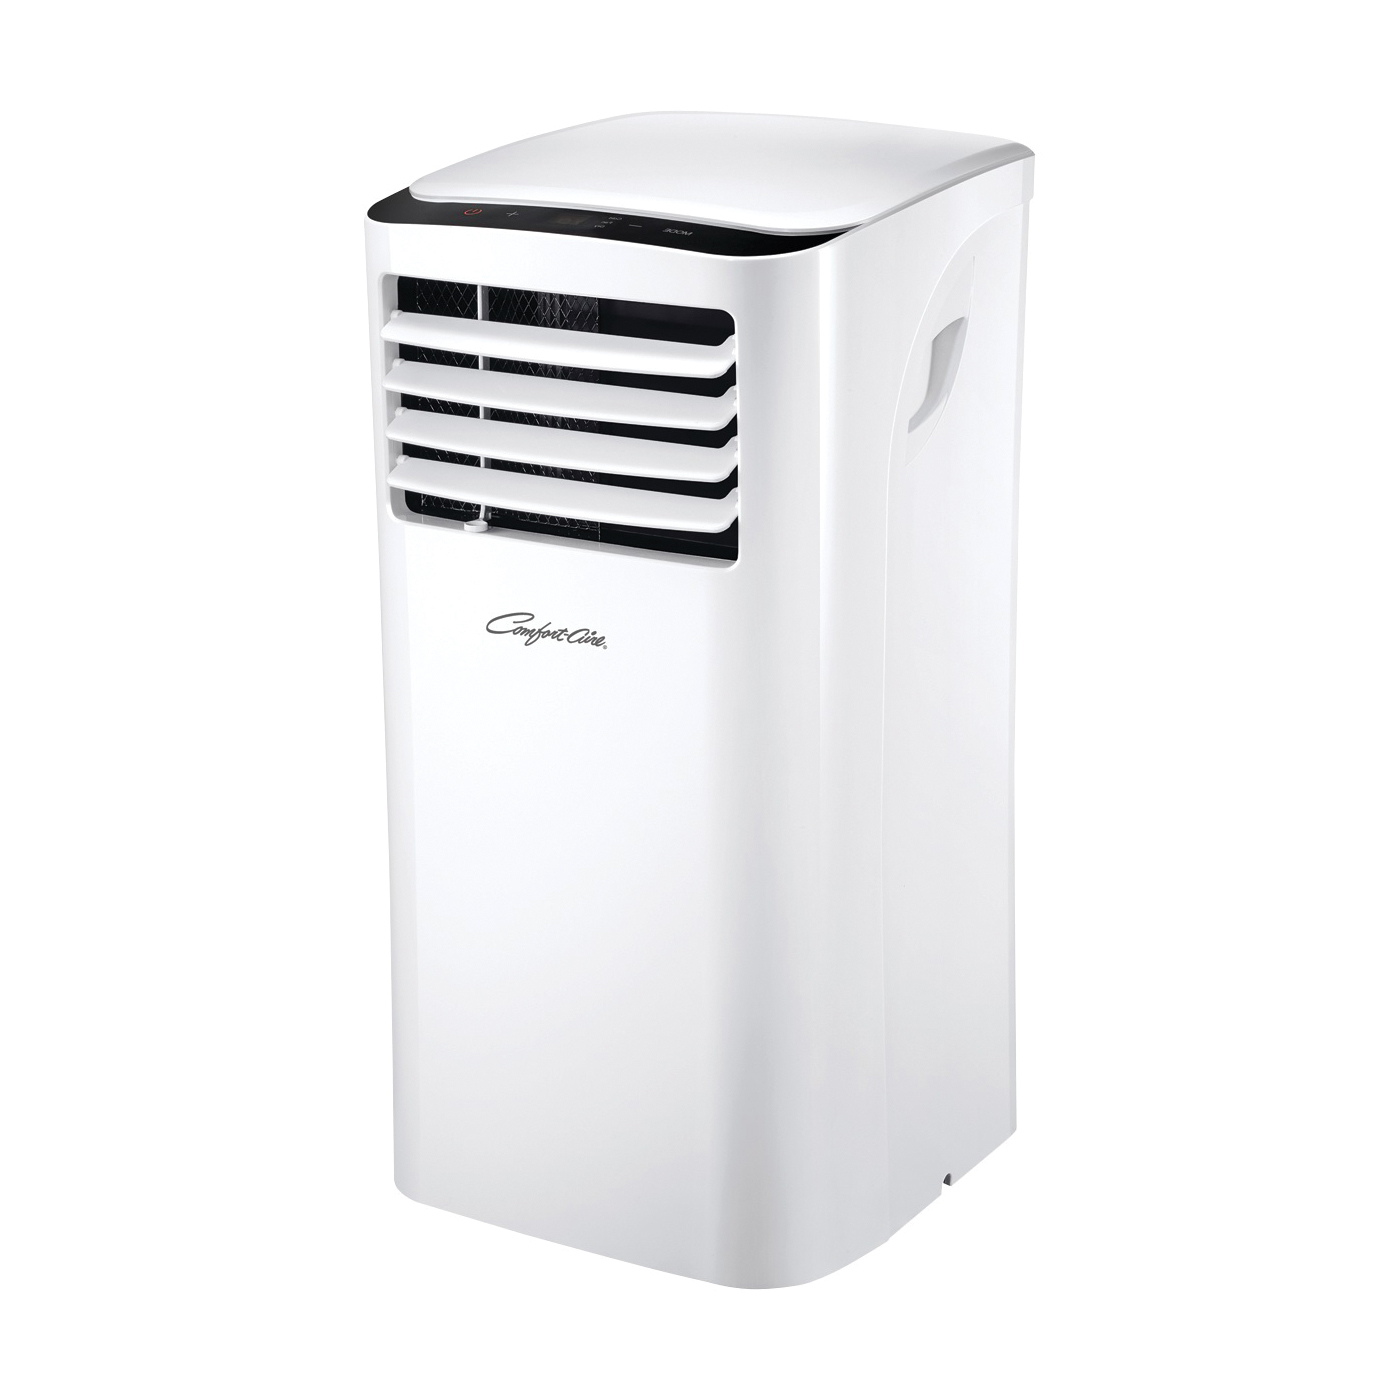 Picture of Comfort-Aire PS-81B Portable Air Conditioner, 115 V, 60 Hz, 8000 Btu/hr Cooling, 2-Speed, R-410a Refrigerant